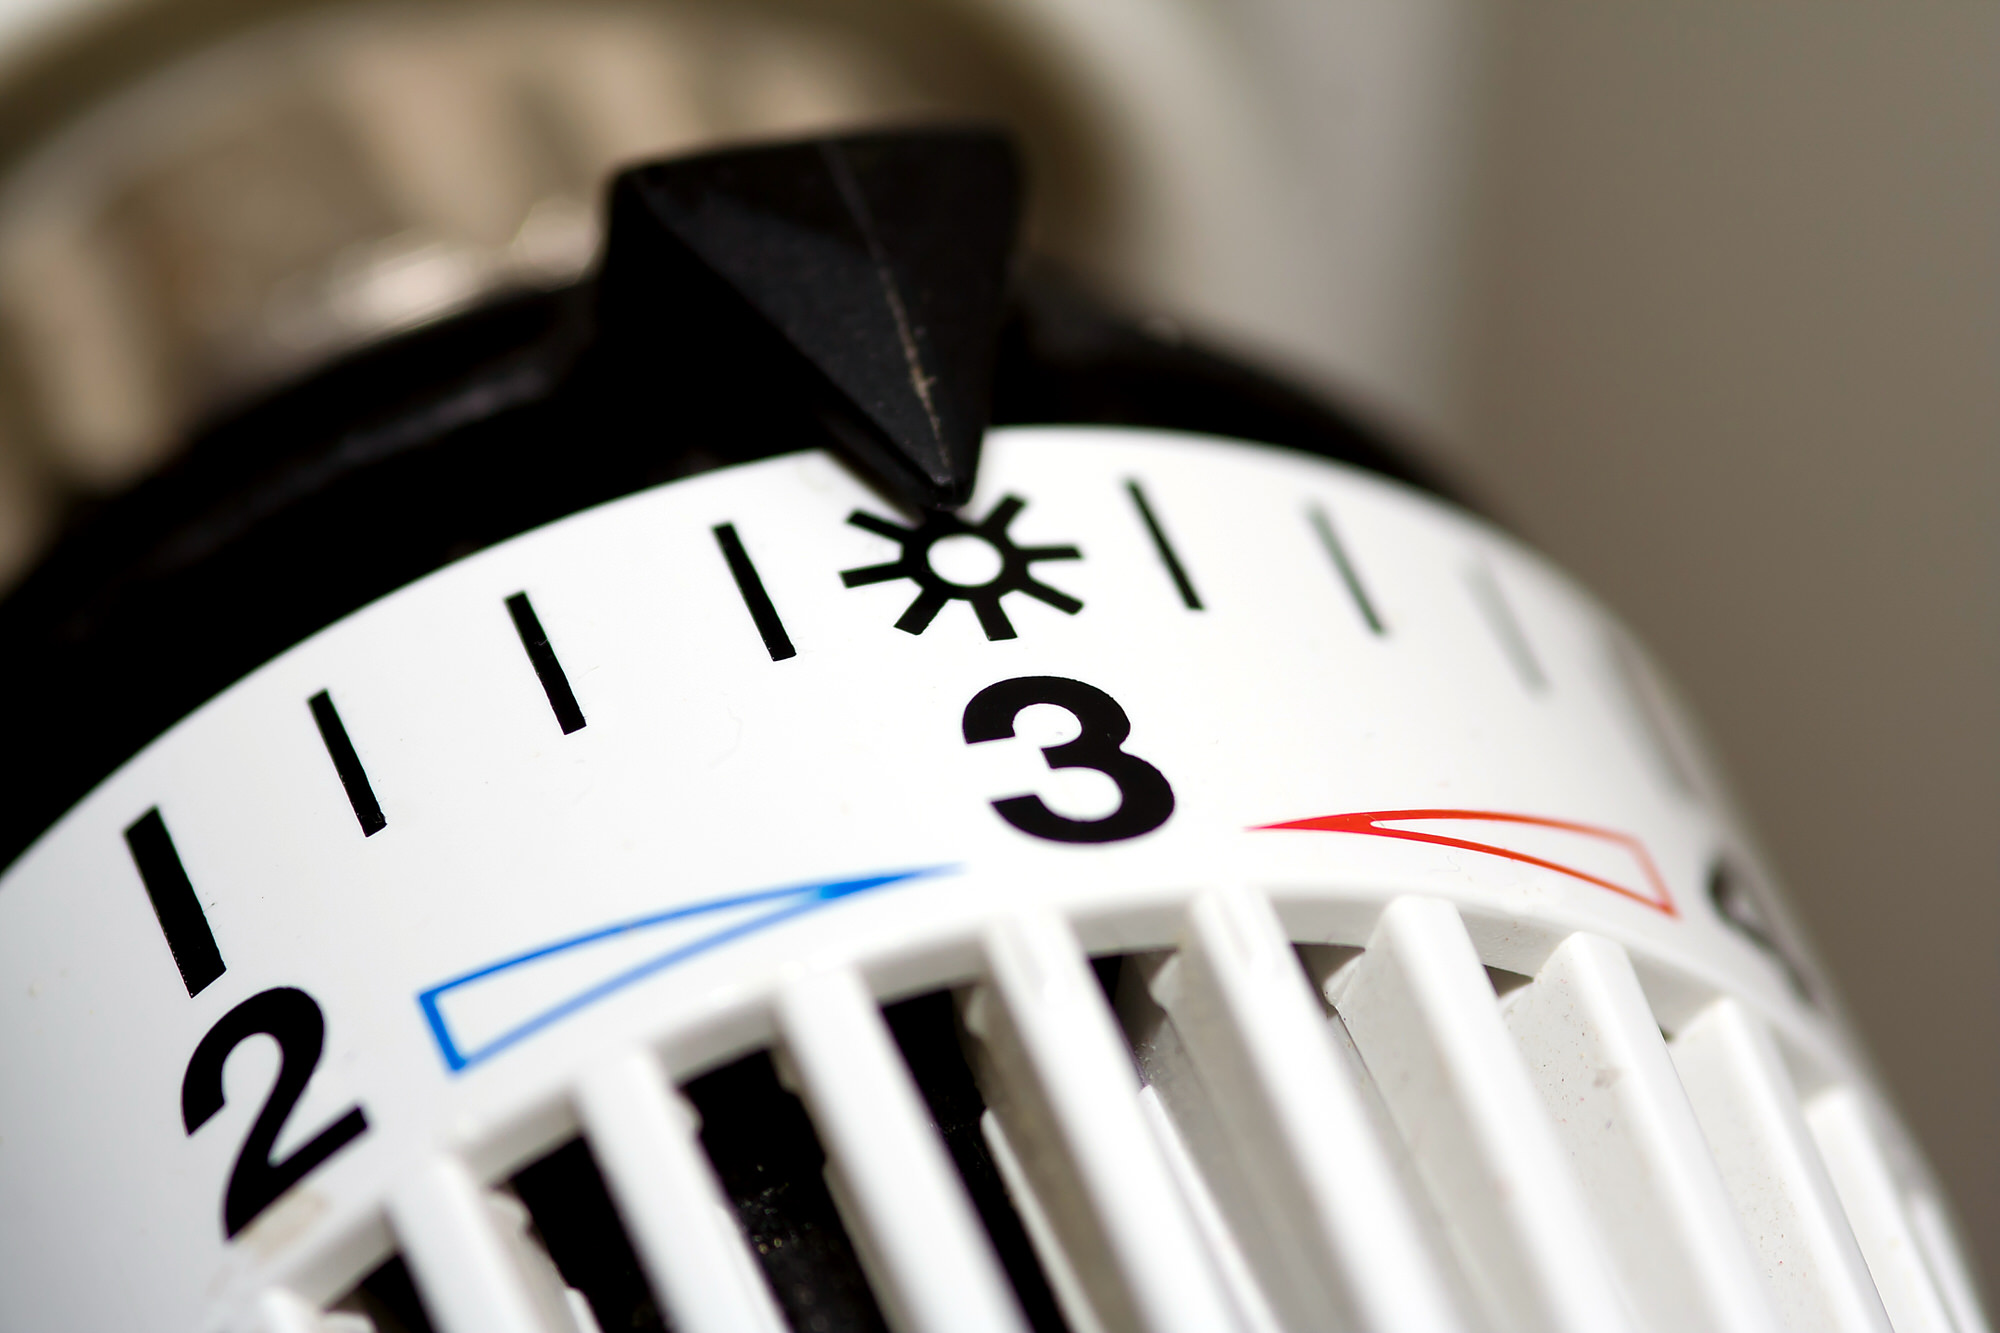 Heater thermostat at sun. summer time and winter temperature